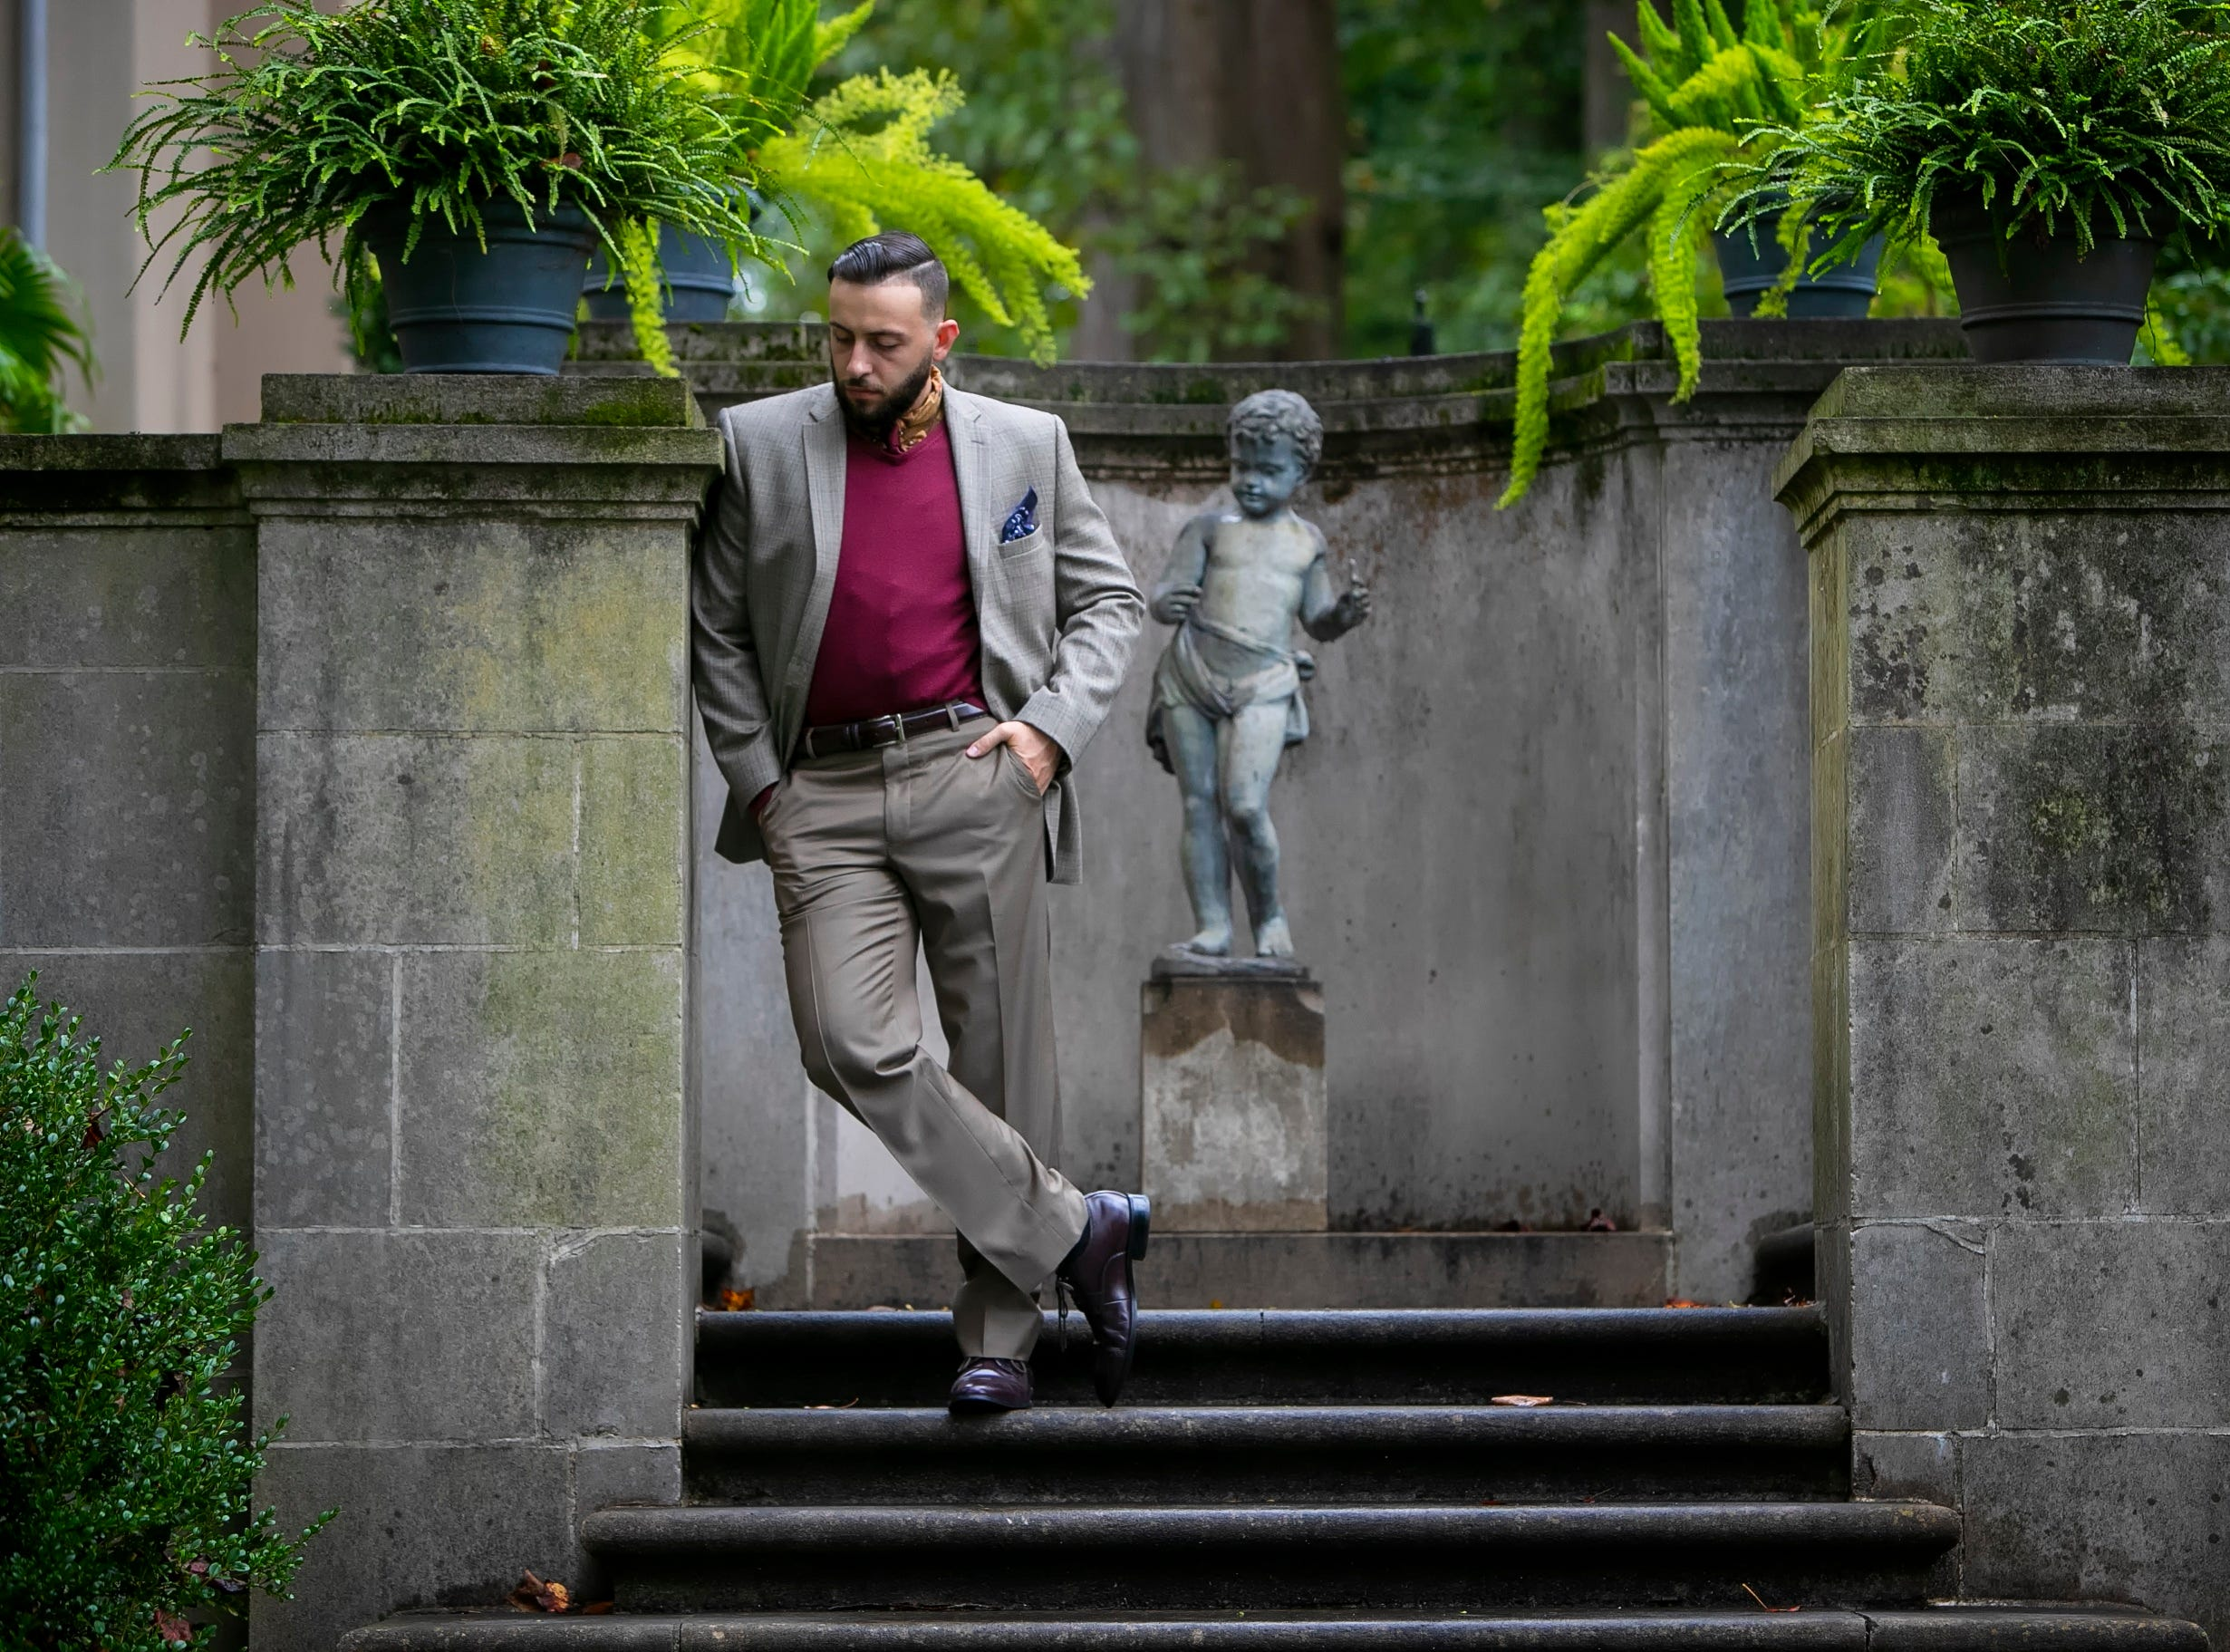 Torrey Malek wears a JoS. A. Bank suit with a Cabela's wilderness game print shirt; maroon marino wool V-neck sweater by John W. Nordstrom; and Joseph Abboud oxblood leather cap-toe shoes.